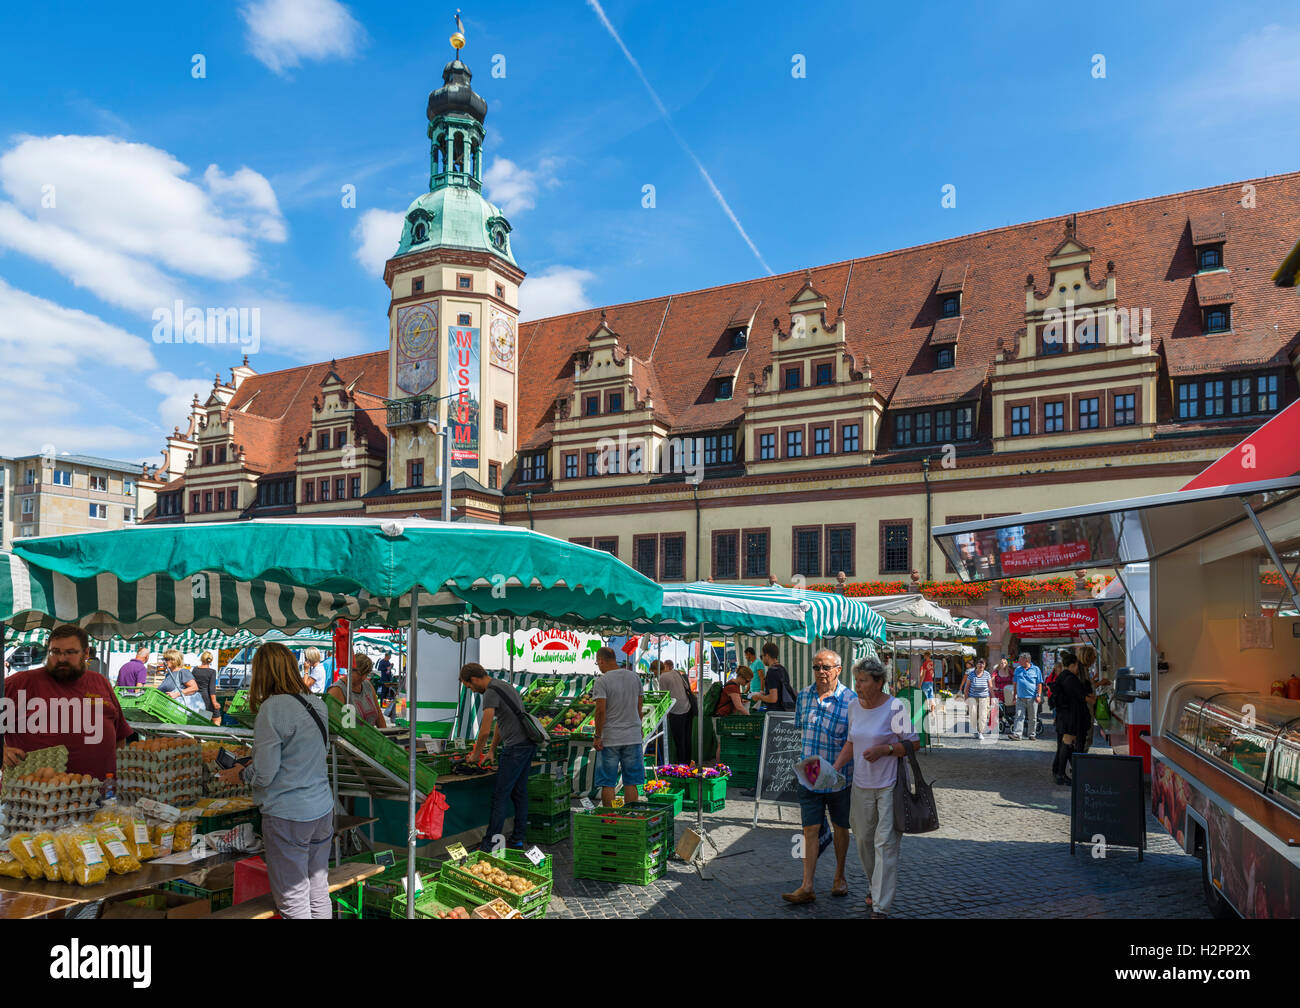 Market in the Markt (Market Square) looking towards the Altes Rathaus (Old Town Hall), Leipzig, Saxony, Germany Stock Photo